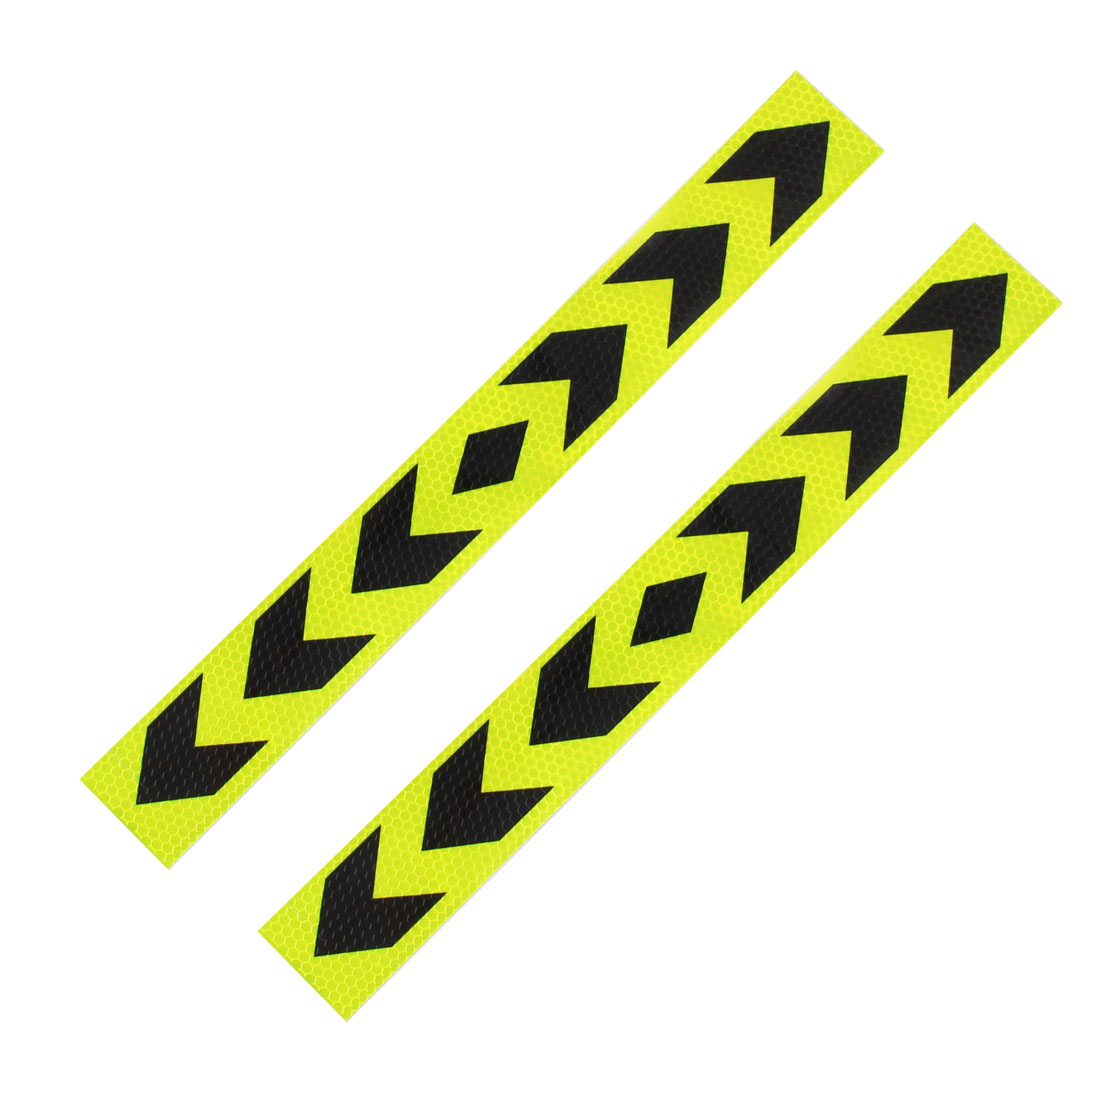 Paper Direction Sign Print Adhensive Car Sticker Black Yellow 2 Pcs